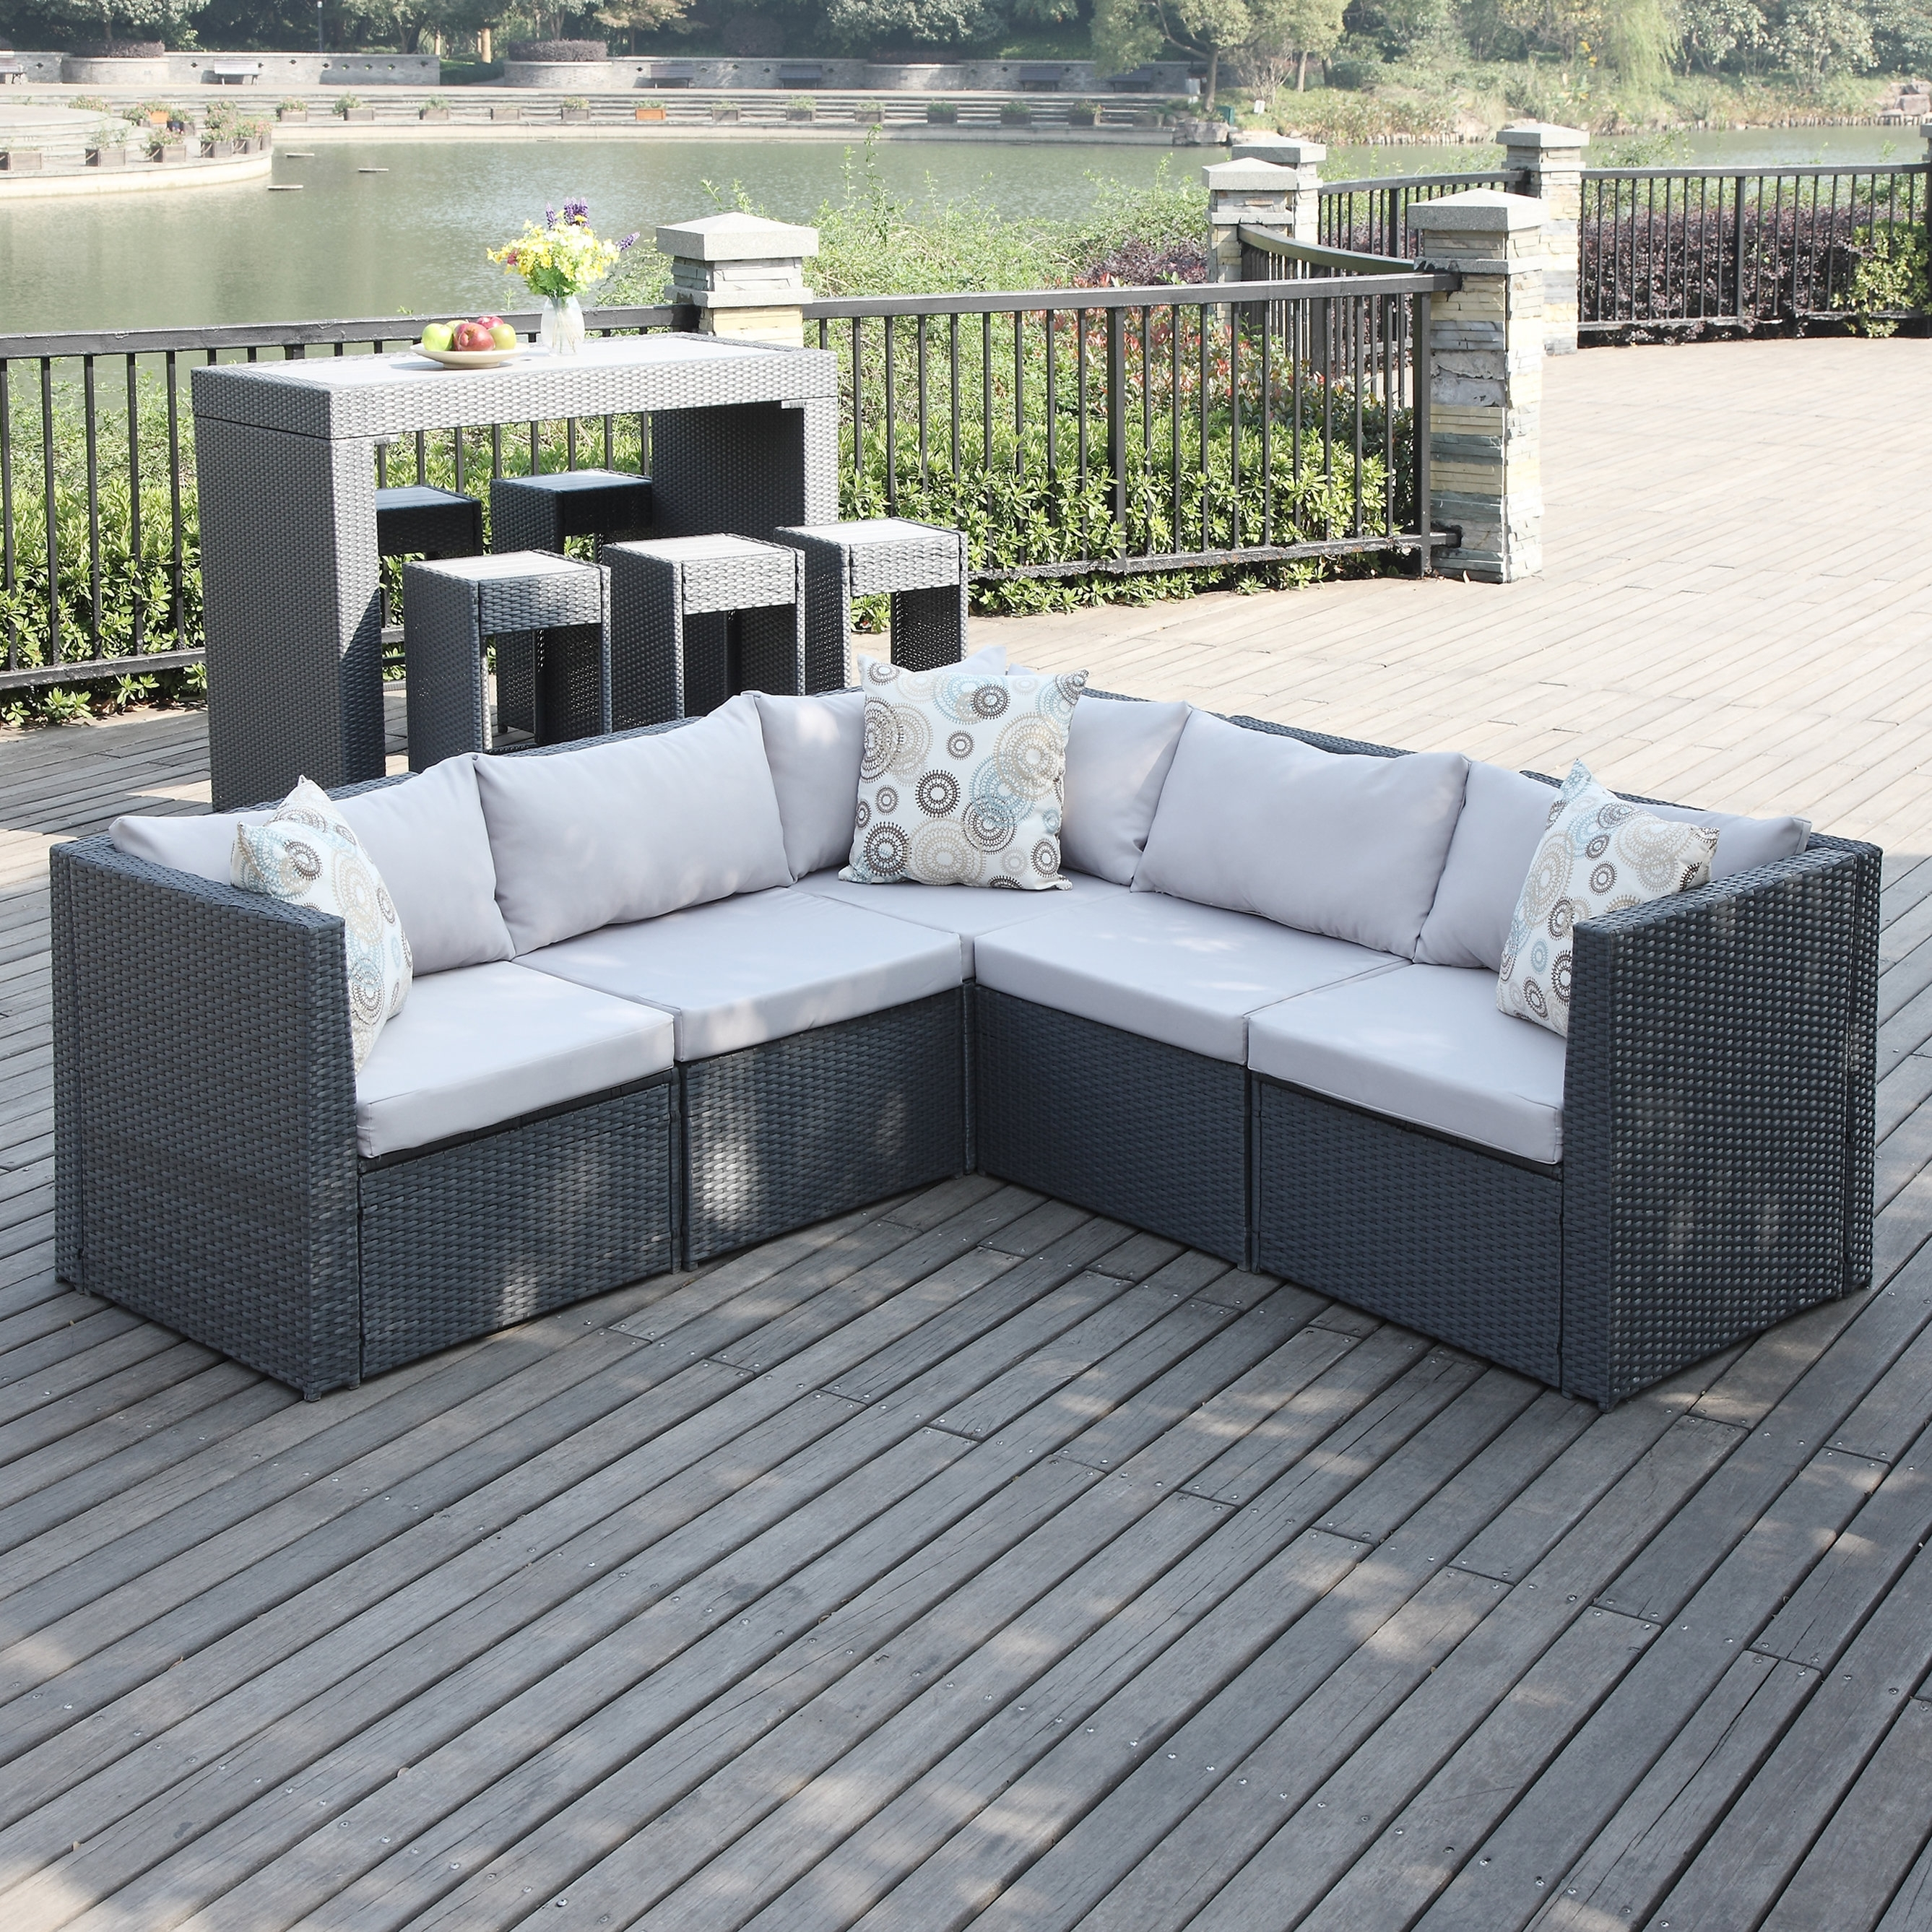 Wicker Patio Sofas & Loveseats You'll Love | Wayfair For Patio Sofas (View 1 of 10)